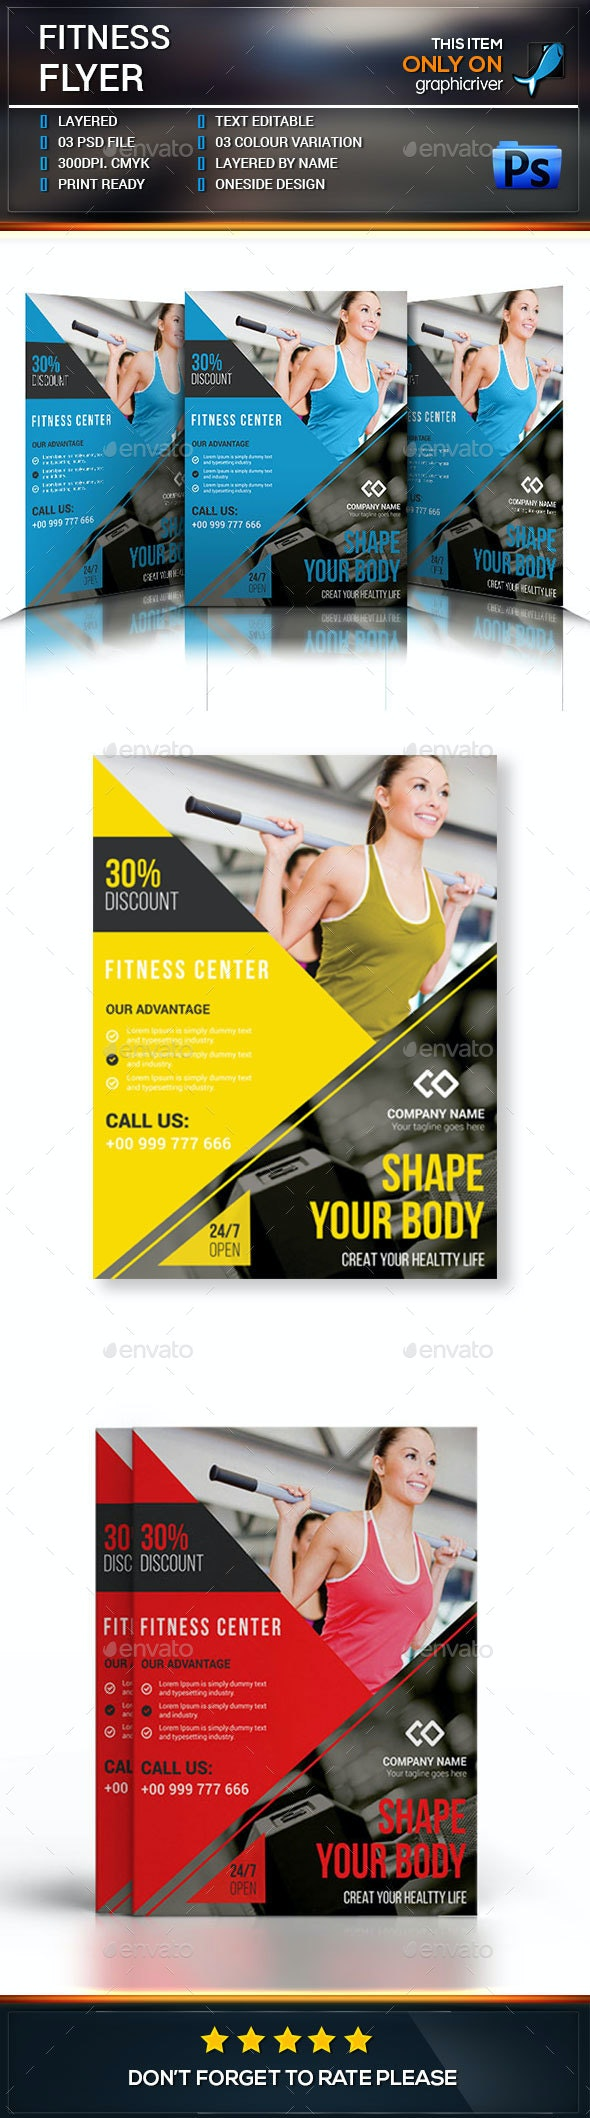 Fitness Flyer Template - Commerce Flyers